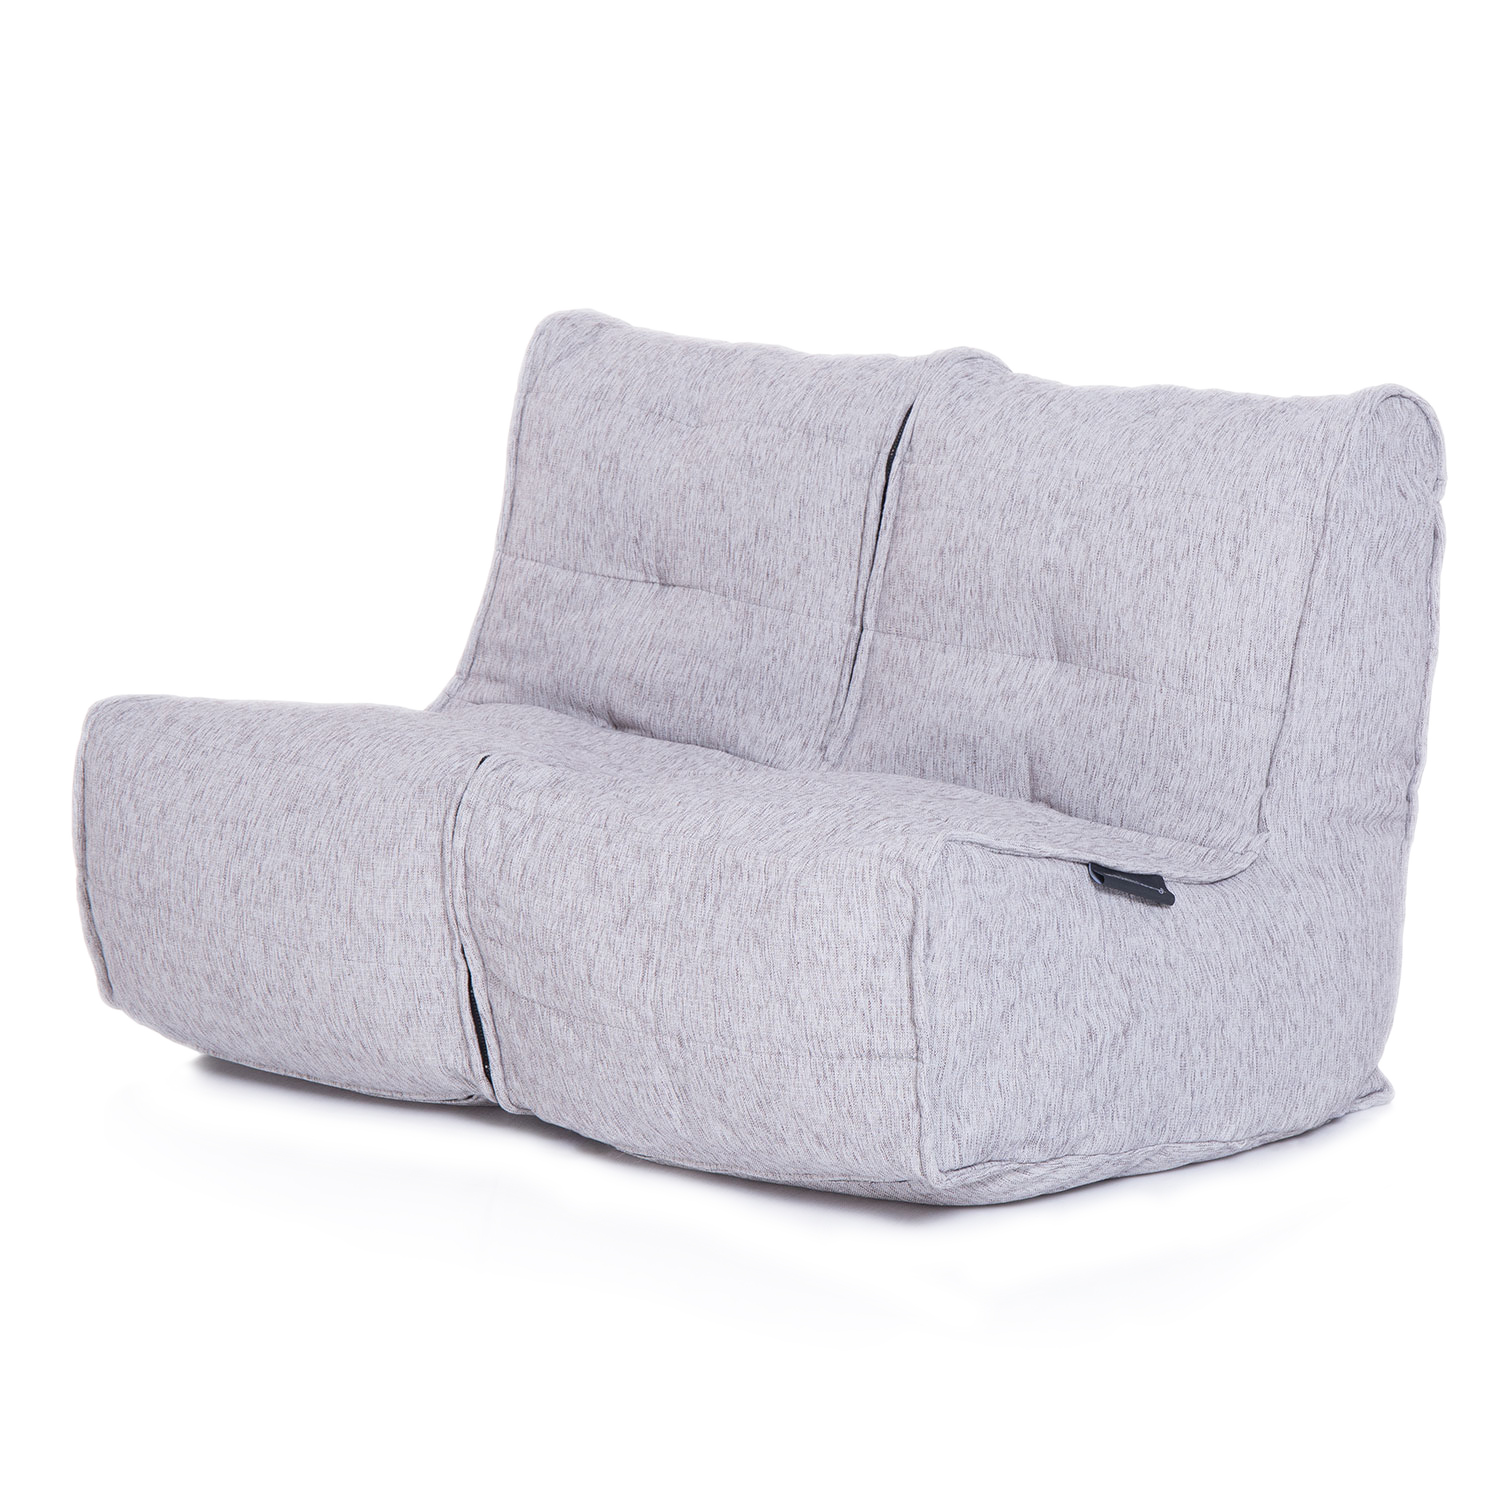 video weight limit couch kids couches size full leather bedroom chair loveseat lumin big of bean cozy joe lots furniture chairs bag lounger